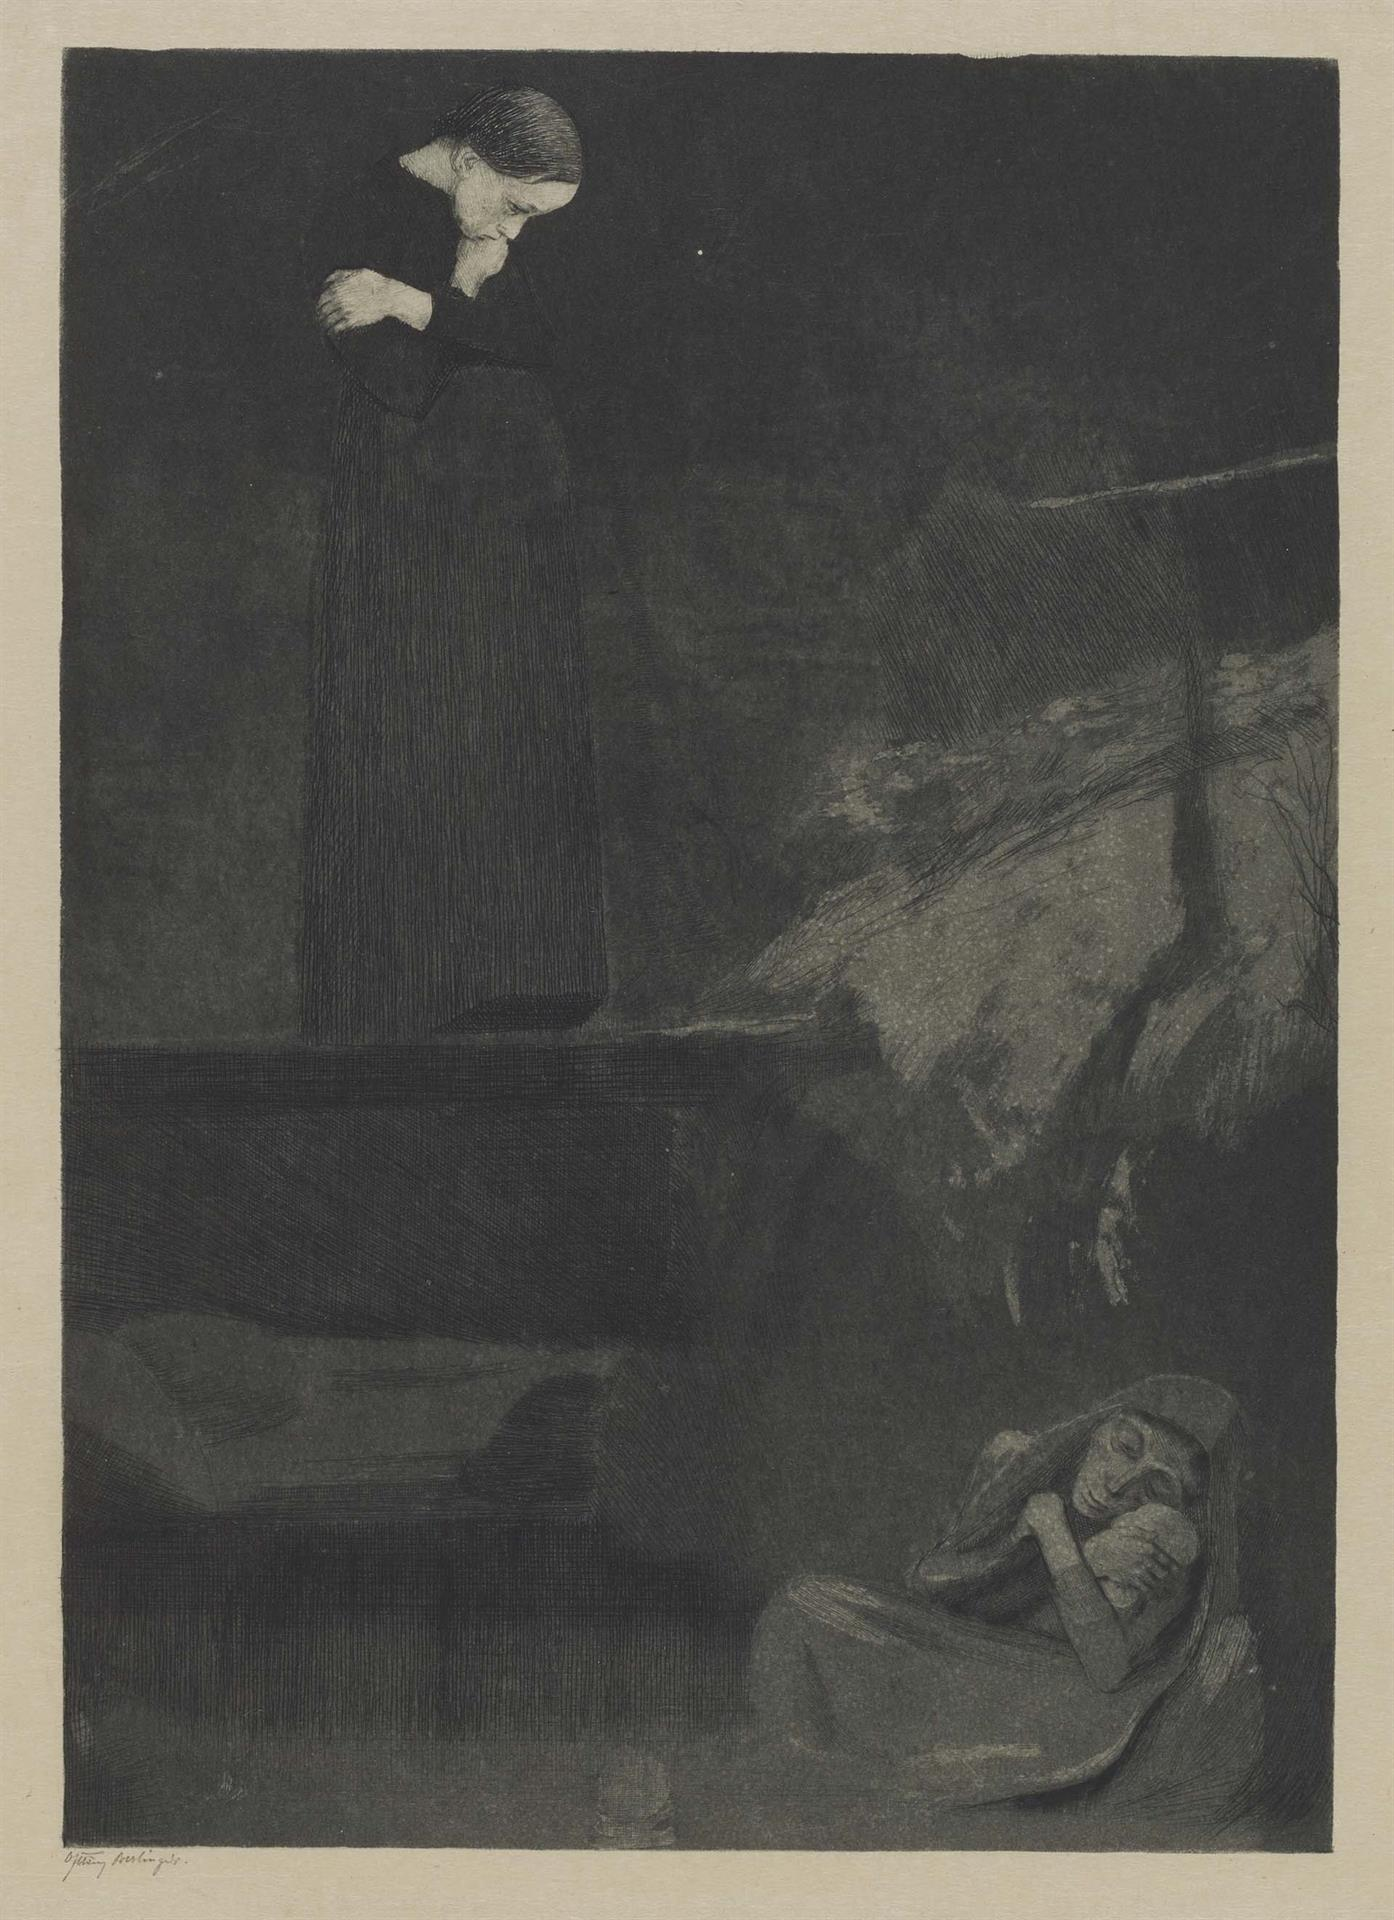 Käthe Kollwitz, Gretchen, 1899, line etching, drypoint, aquatint and burnisher, Kn 45 IV, Cologne Kollwitz Collection © Käthe Kollwitz Museum Köln